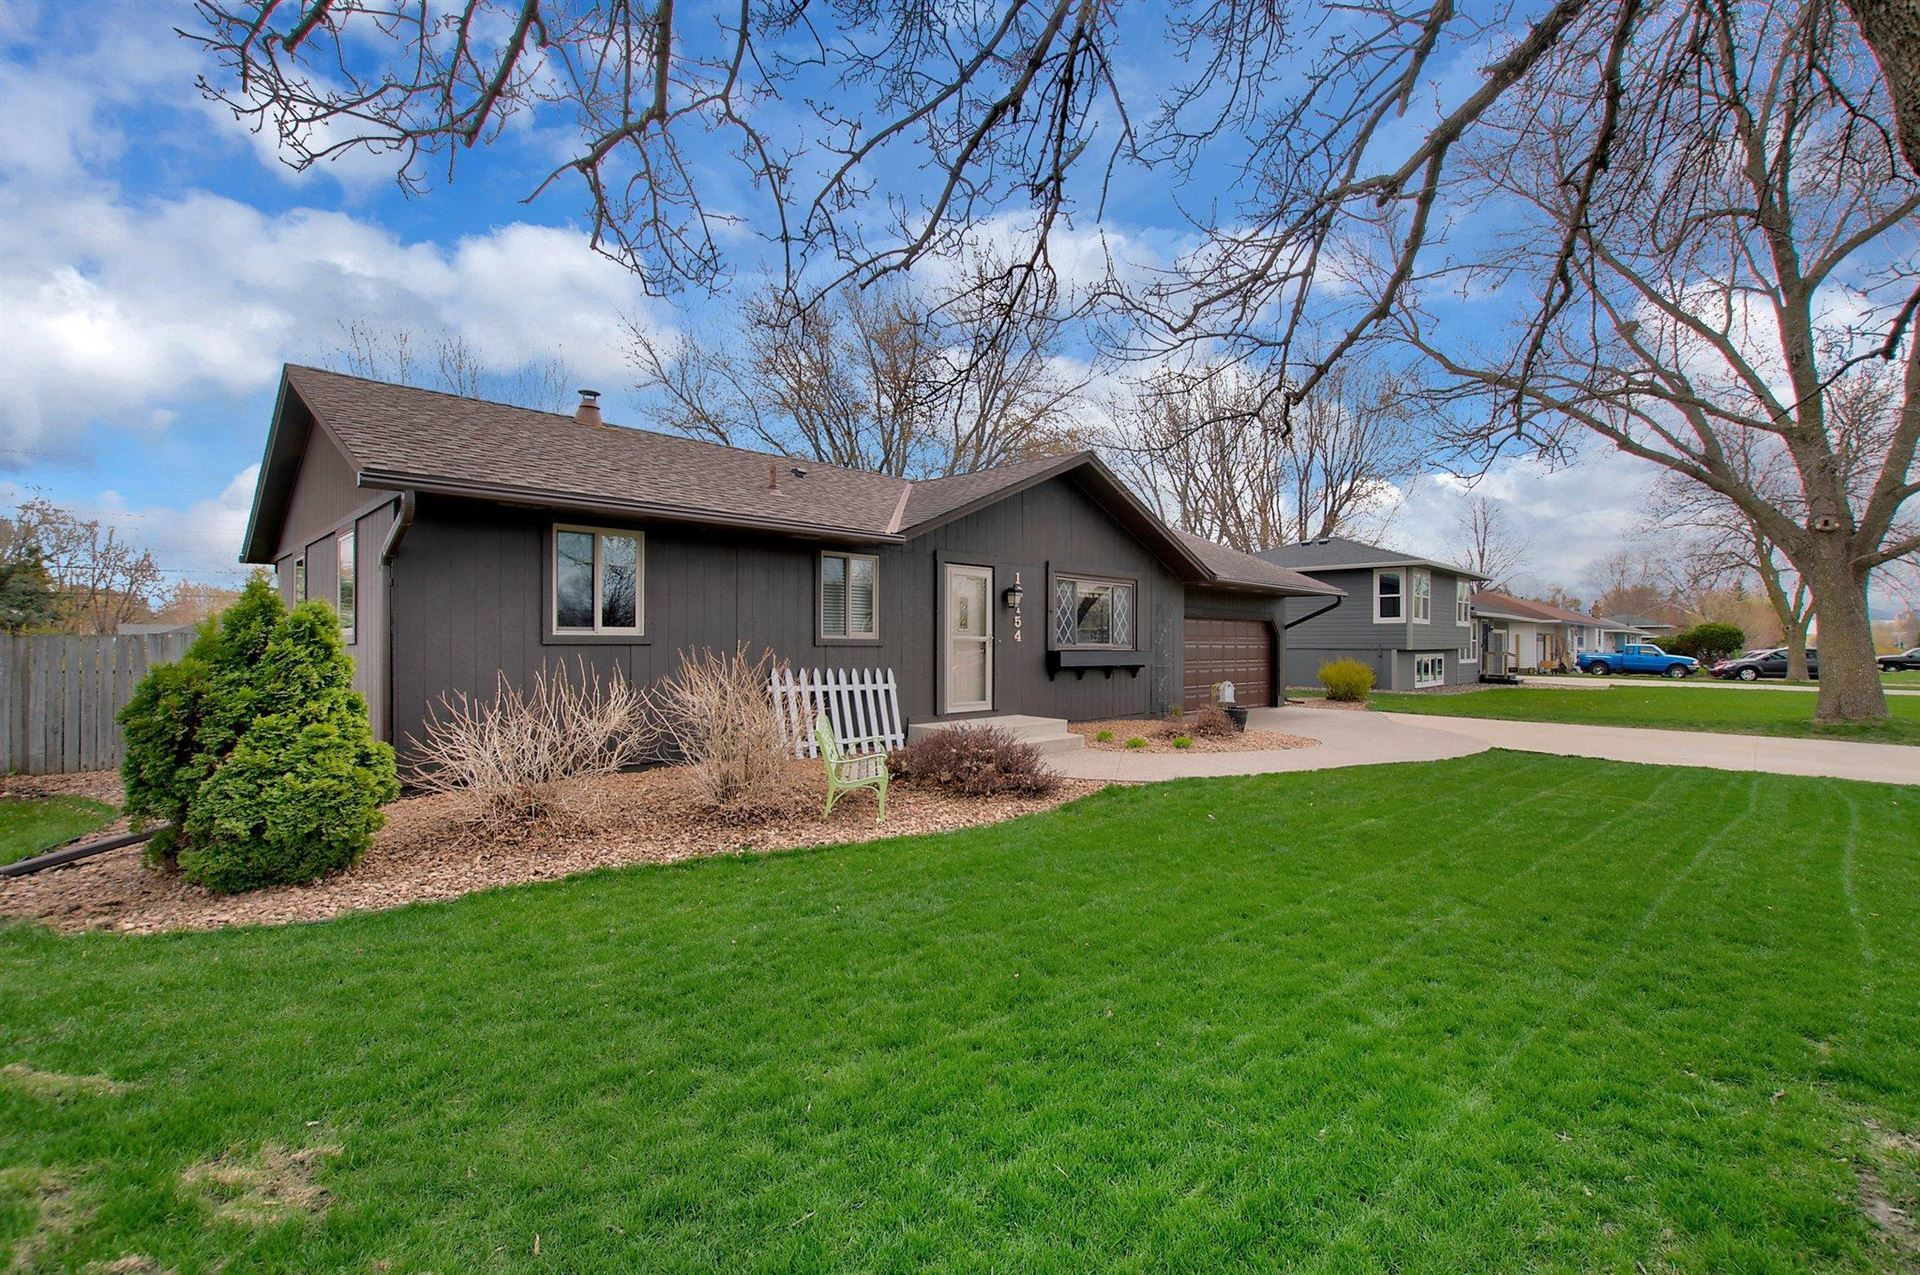 Photo of 16154 Flagstaff Avenue W, Lakeville, MN 55068 (MLS # 5743064)